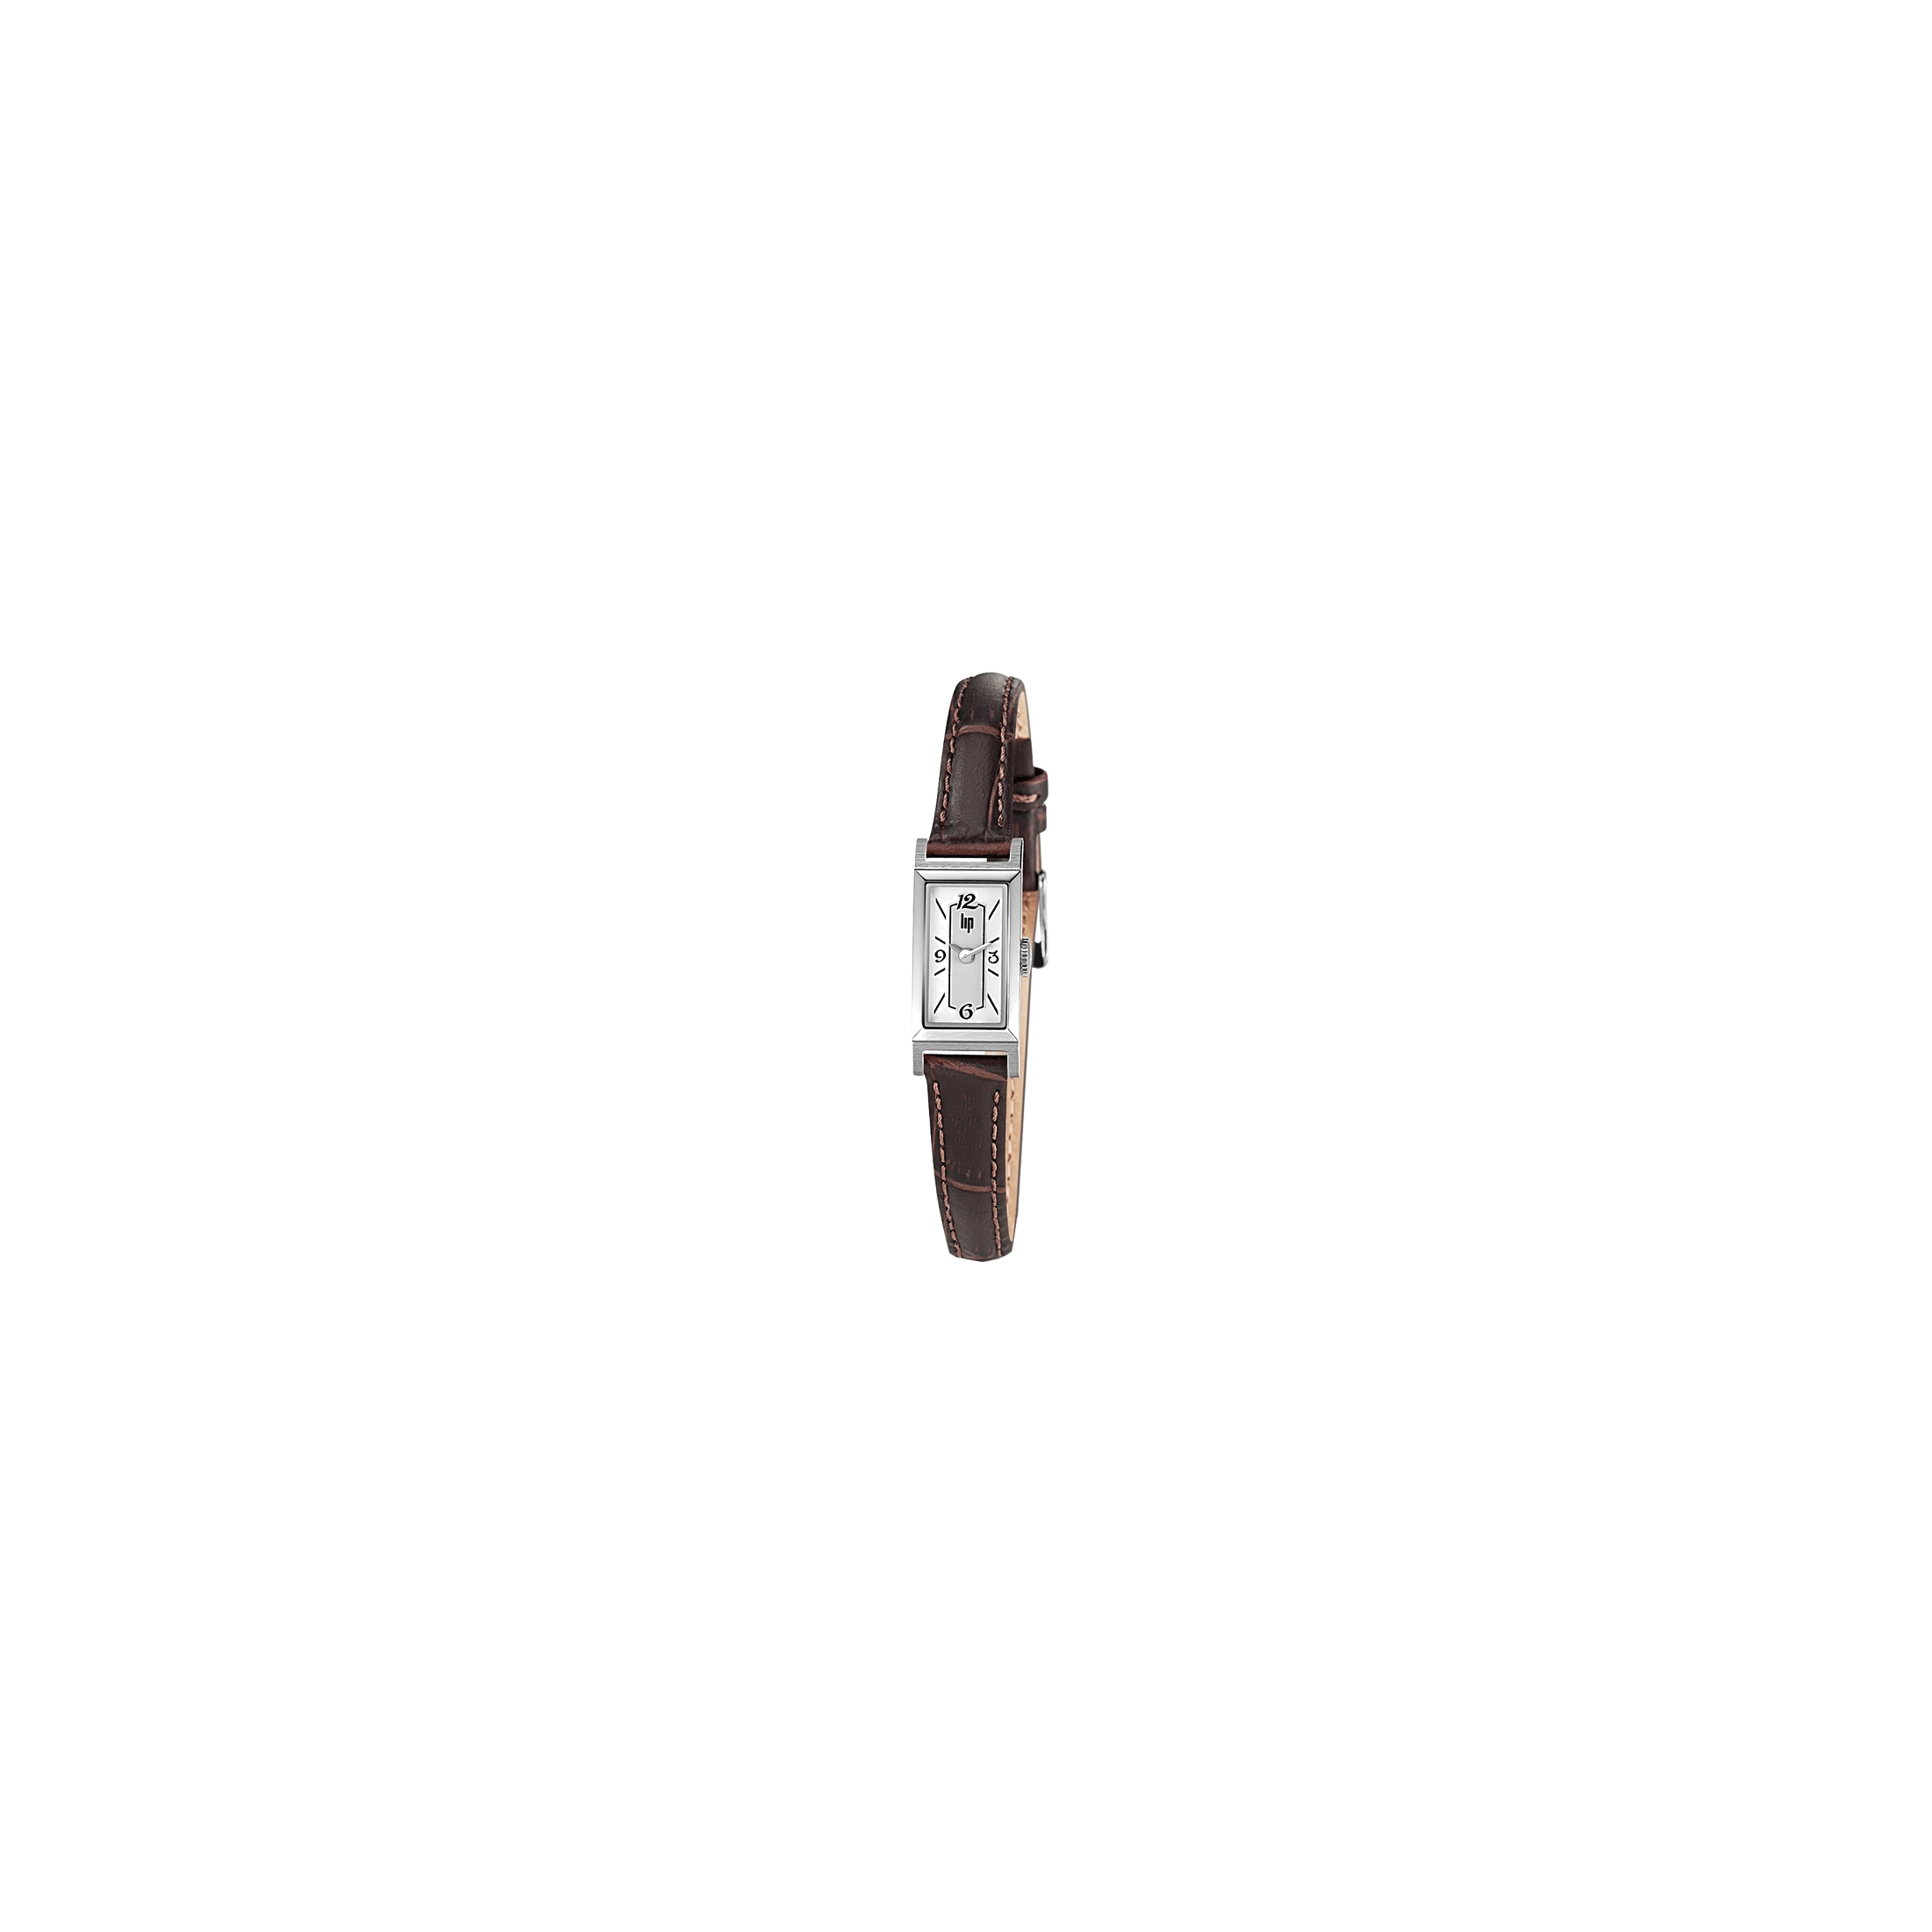 Montre Lip Churchill T13 quartz cadran blanc bracelet cuir marron